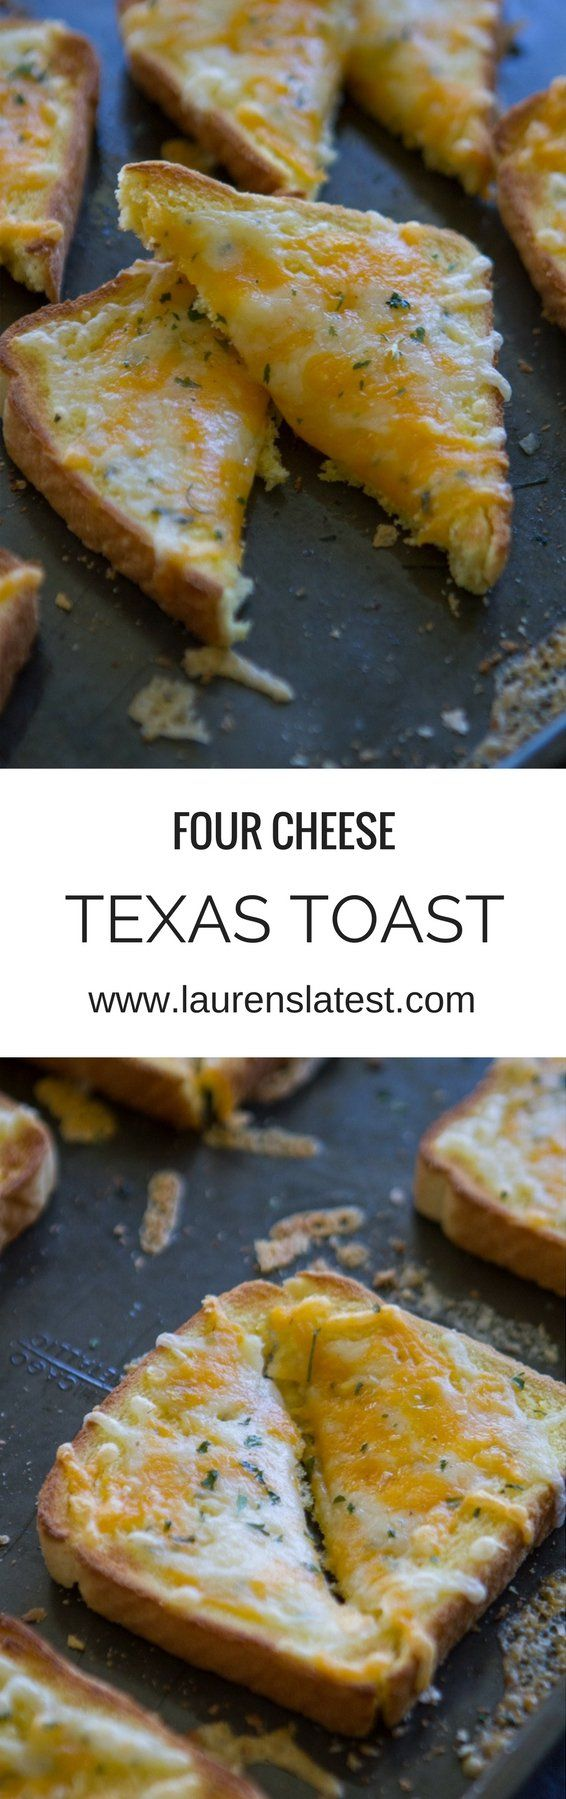 Four Cheese Texas Toast | Lauren's Latest